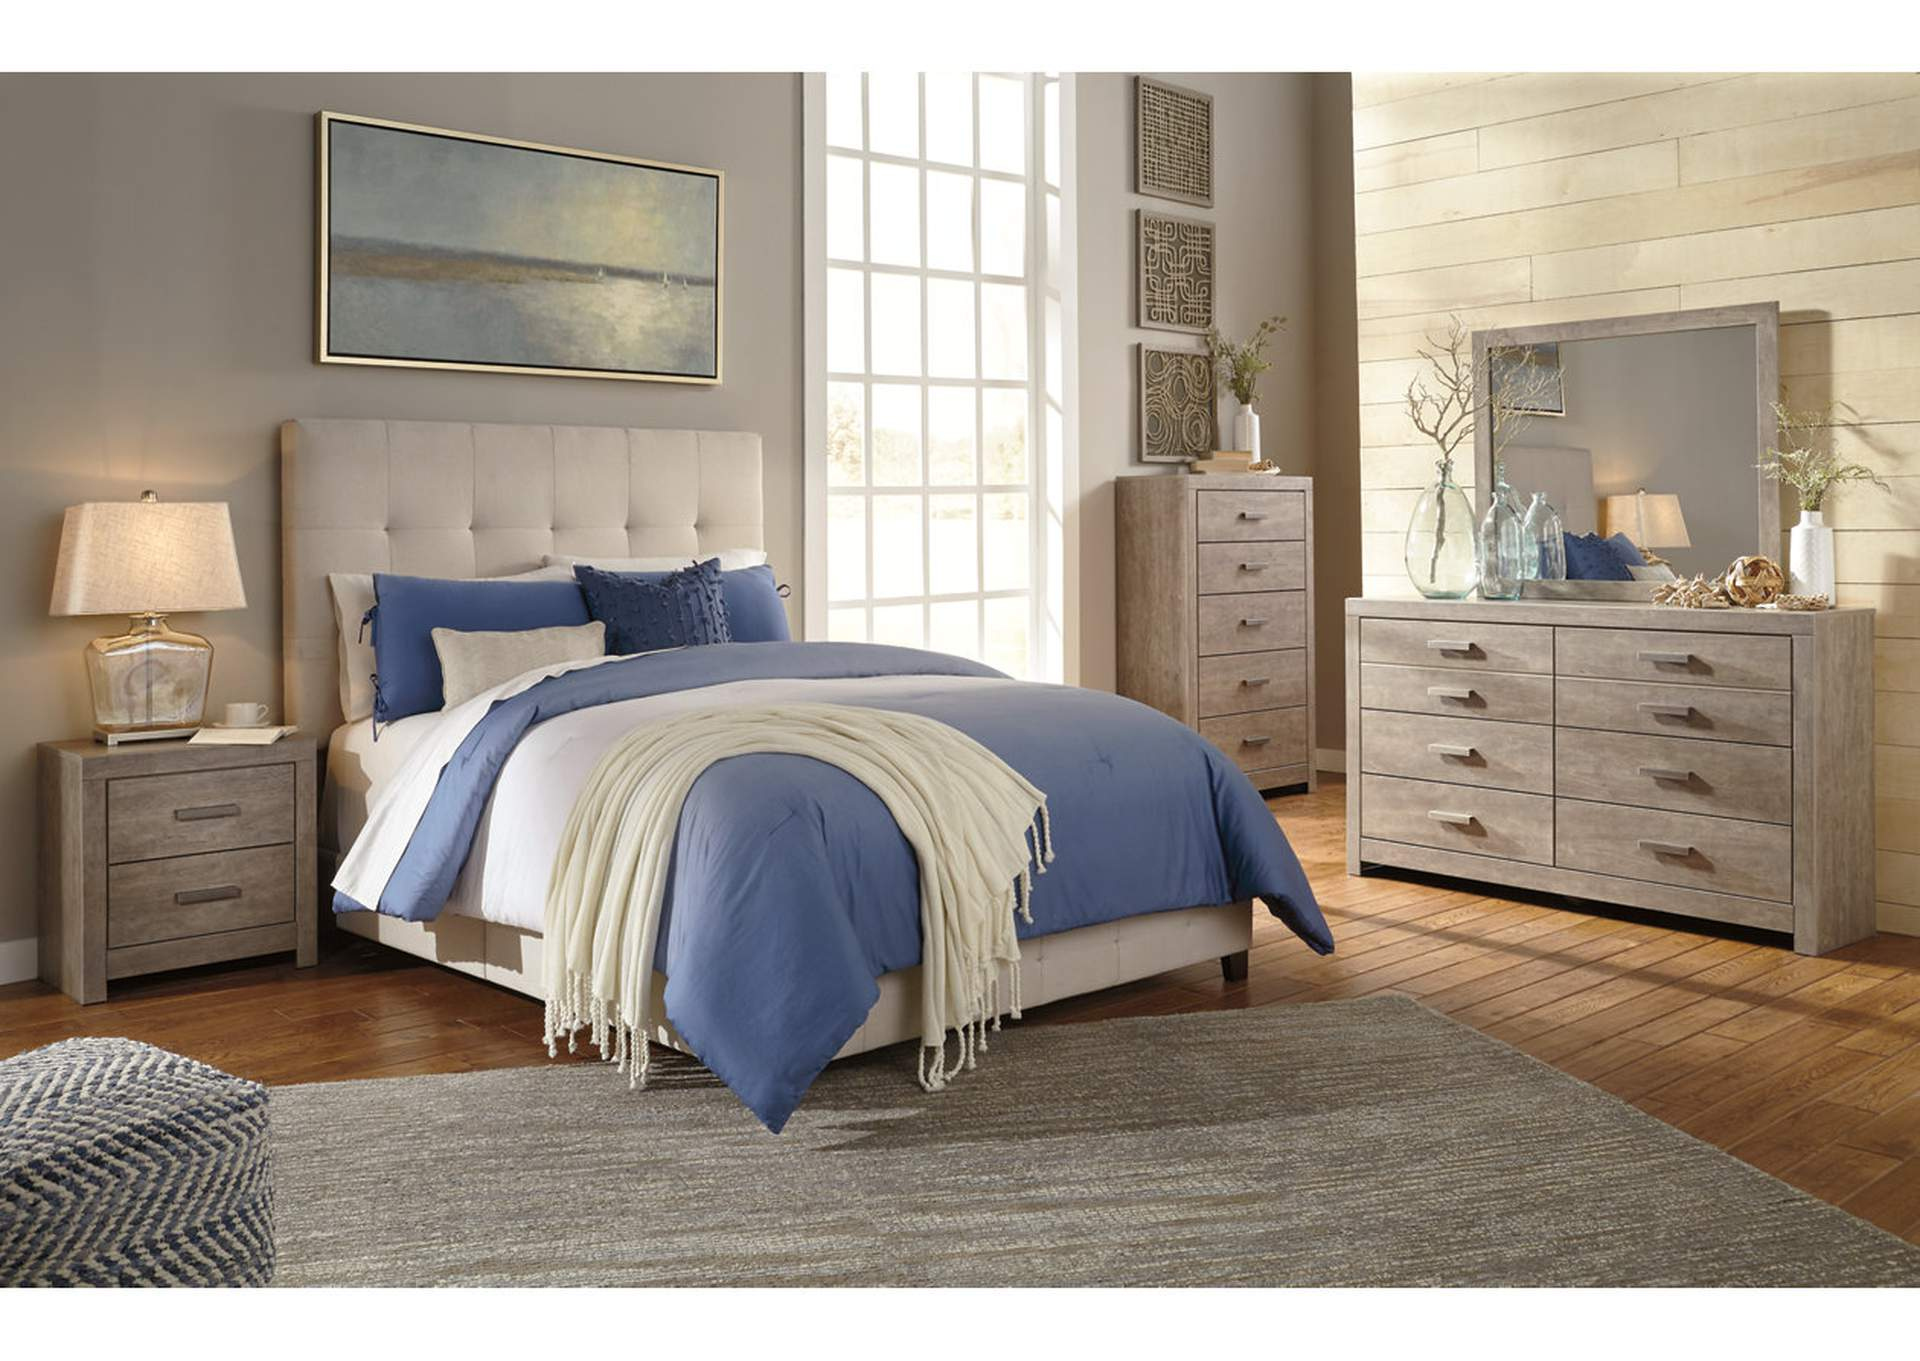 Dolante Beige King Upholstered Platform Bed,Signature Design By Ashley